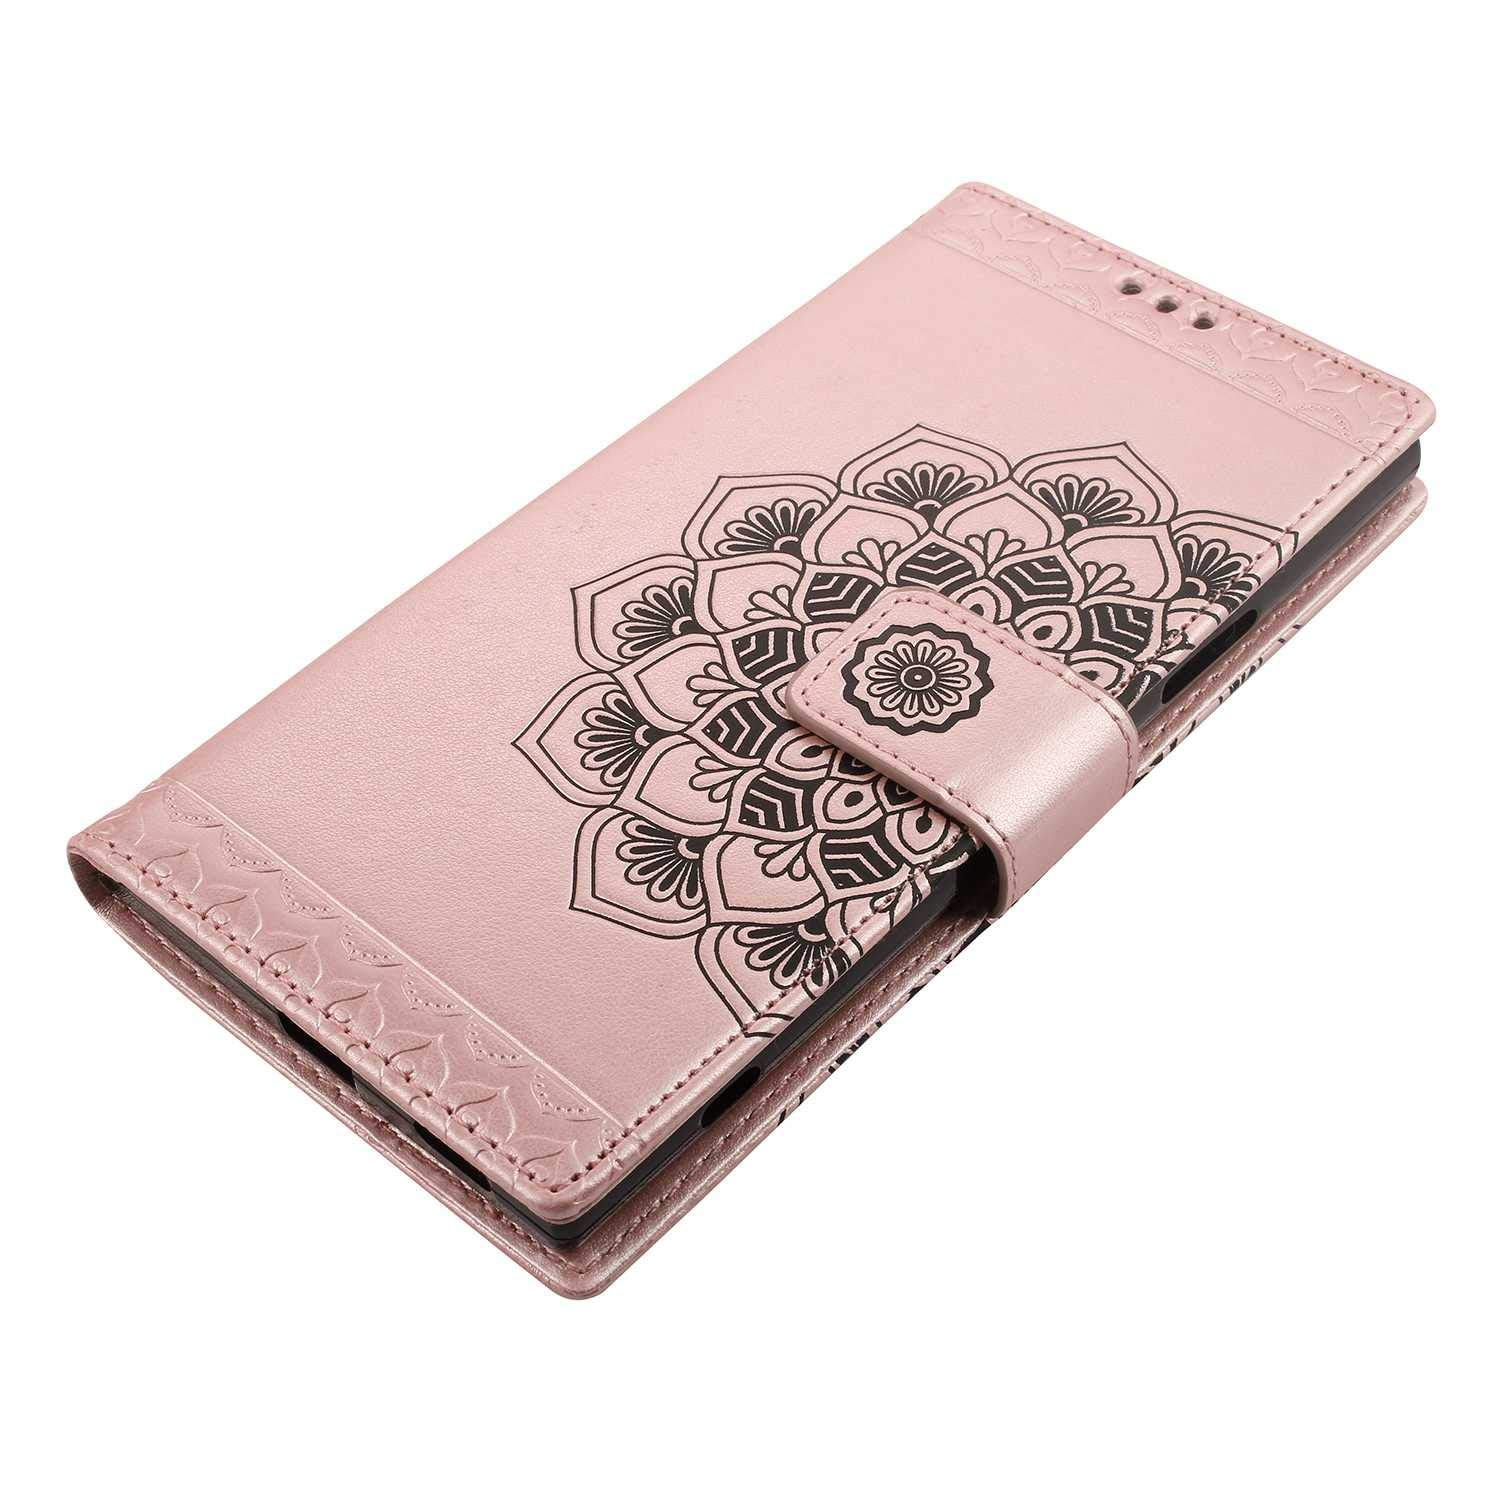 Sony Xperia XA2 Ultra Case The Grafu Flip Leather Wallet Cover Card Slot Holder with Kickstand and Metal Magnetic Closure for Sony Xperia XA2 Ultra Gray